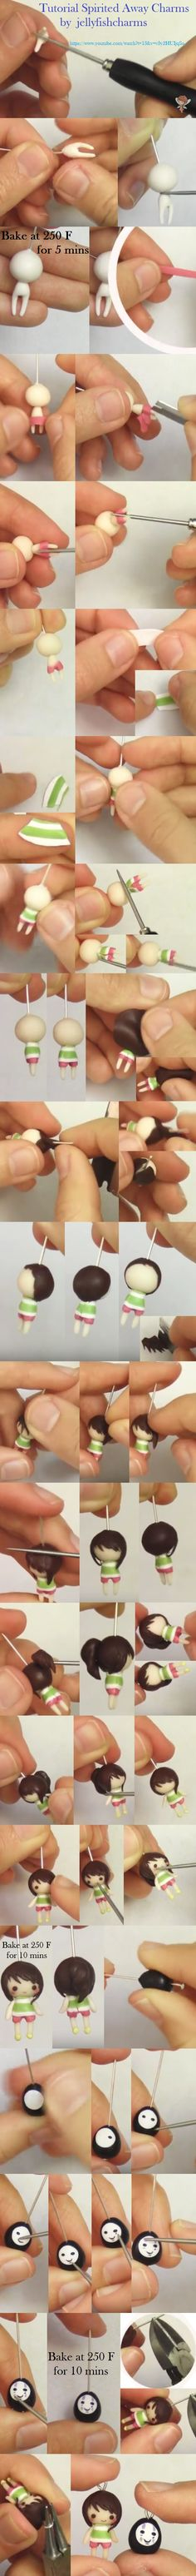 Spirited Away Charms #Tutorial https://www.youtube.com/watch?t=13&v=v3y2HUIjqSo